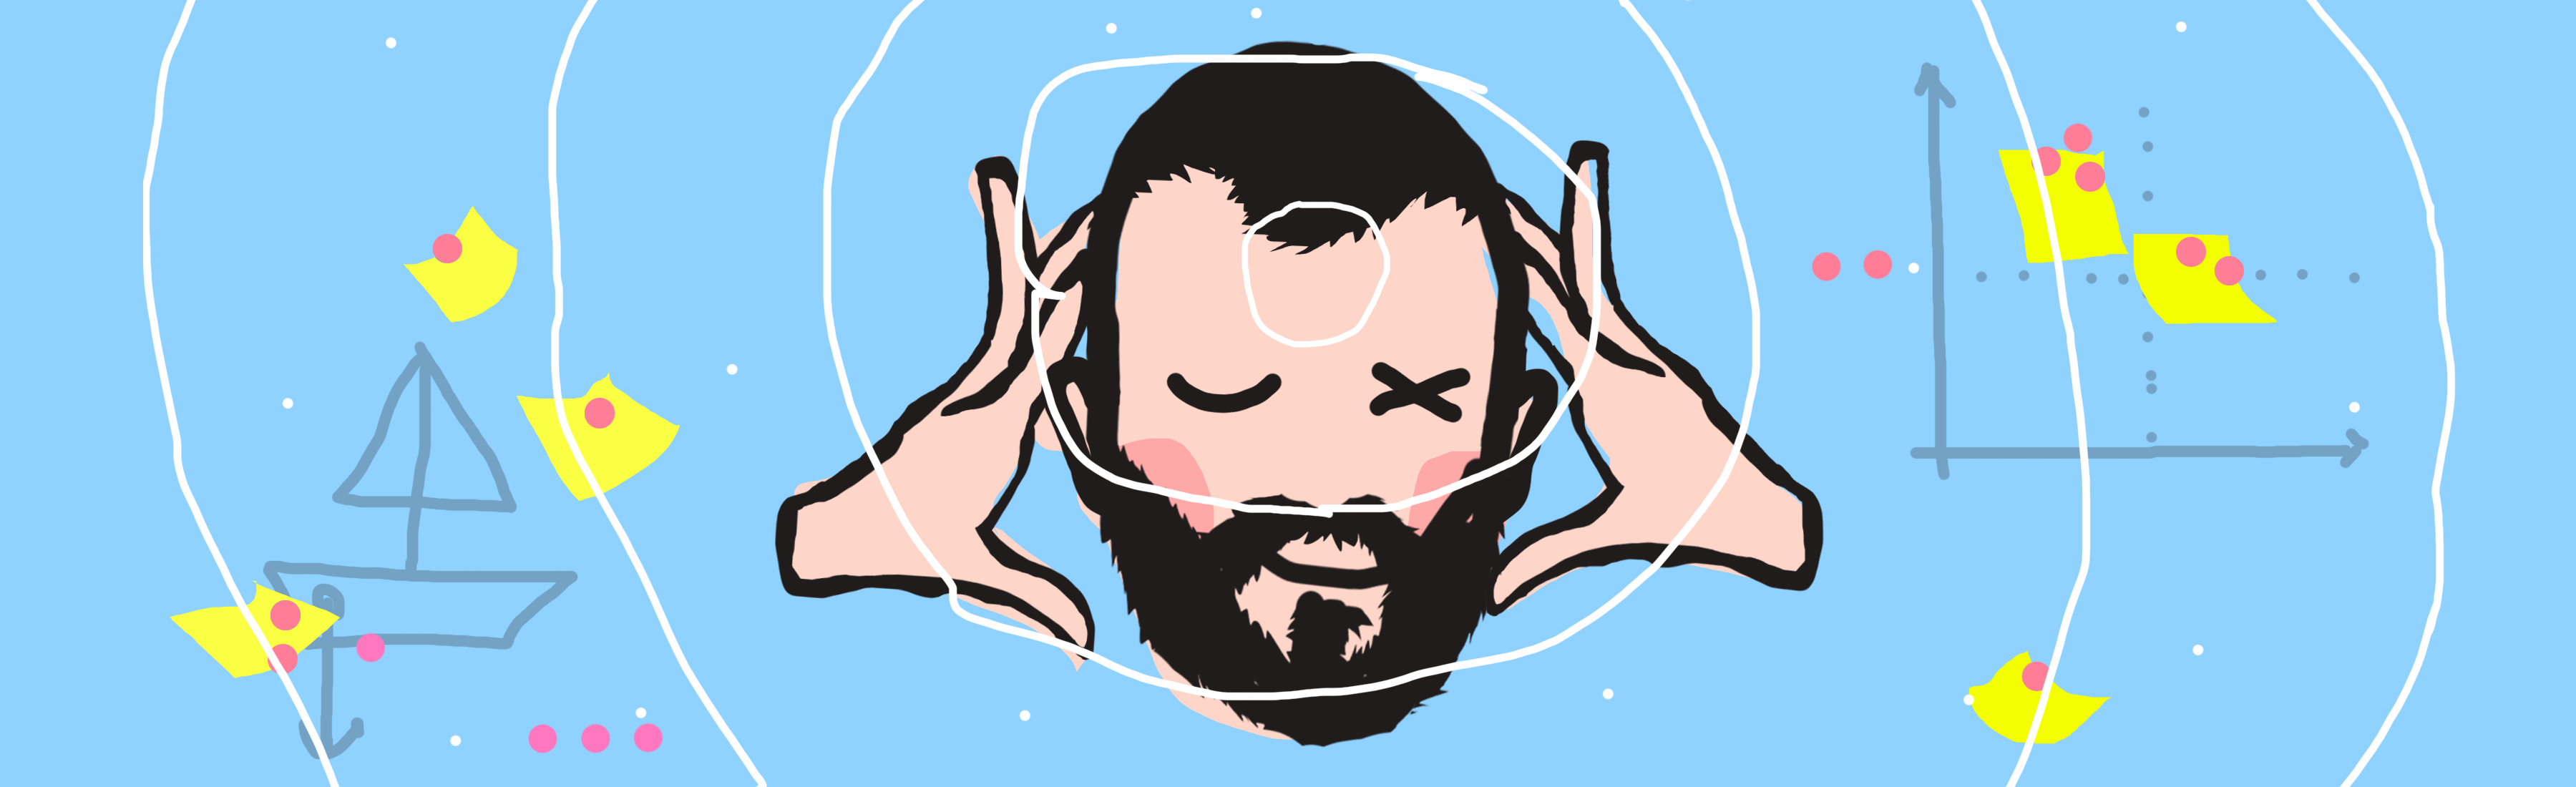 Badly drawn illustration of a floating head of a guy pretending to mind read